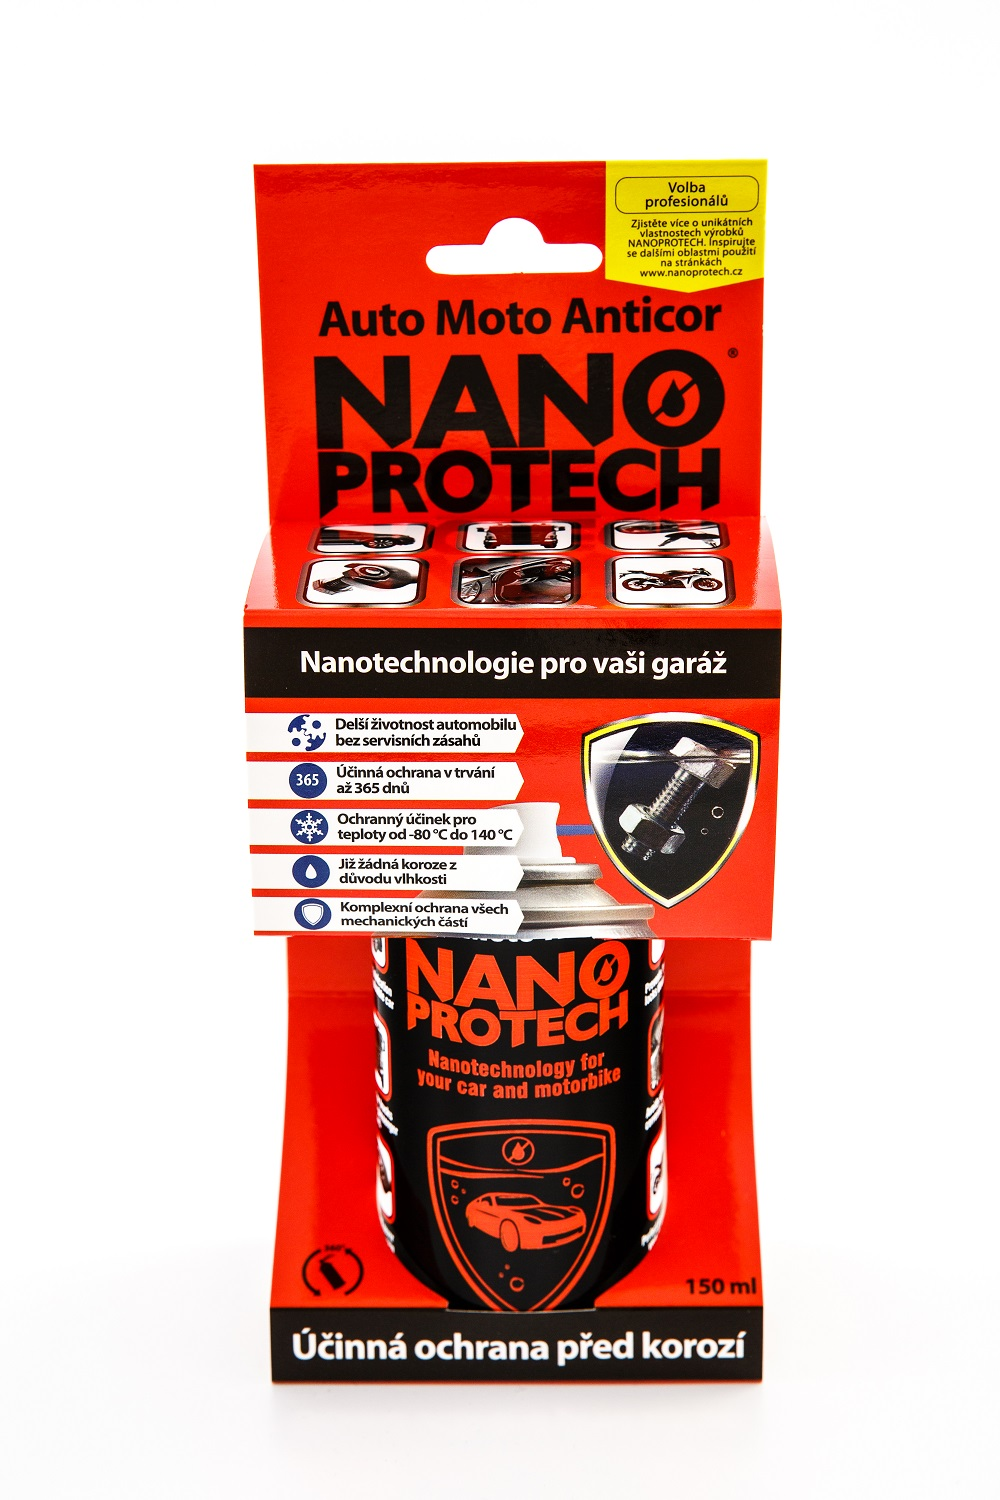 Auto Moto Anticor Nanoprotech